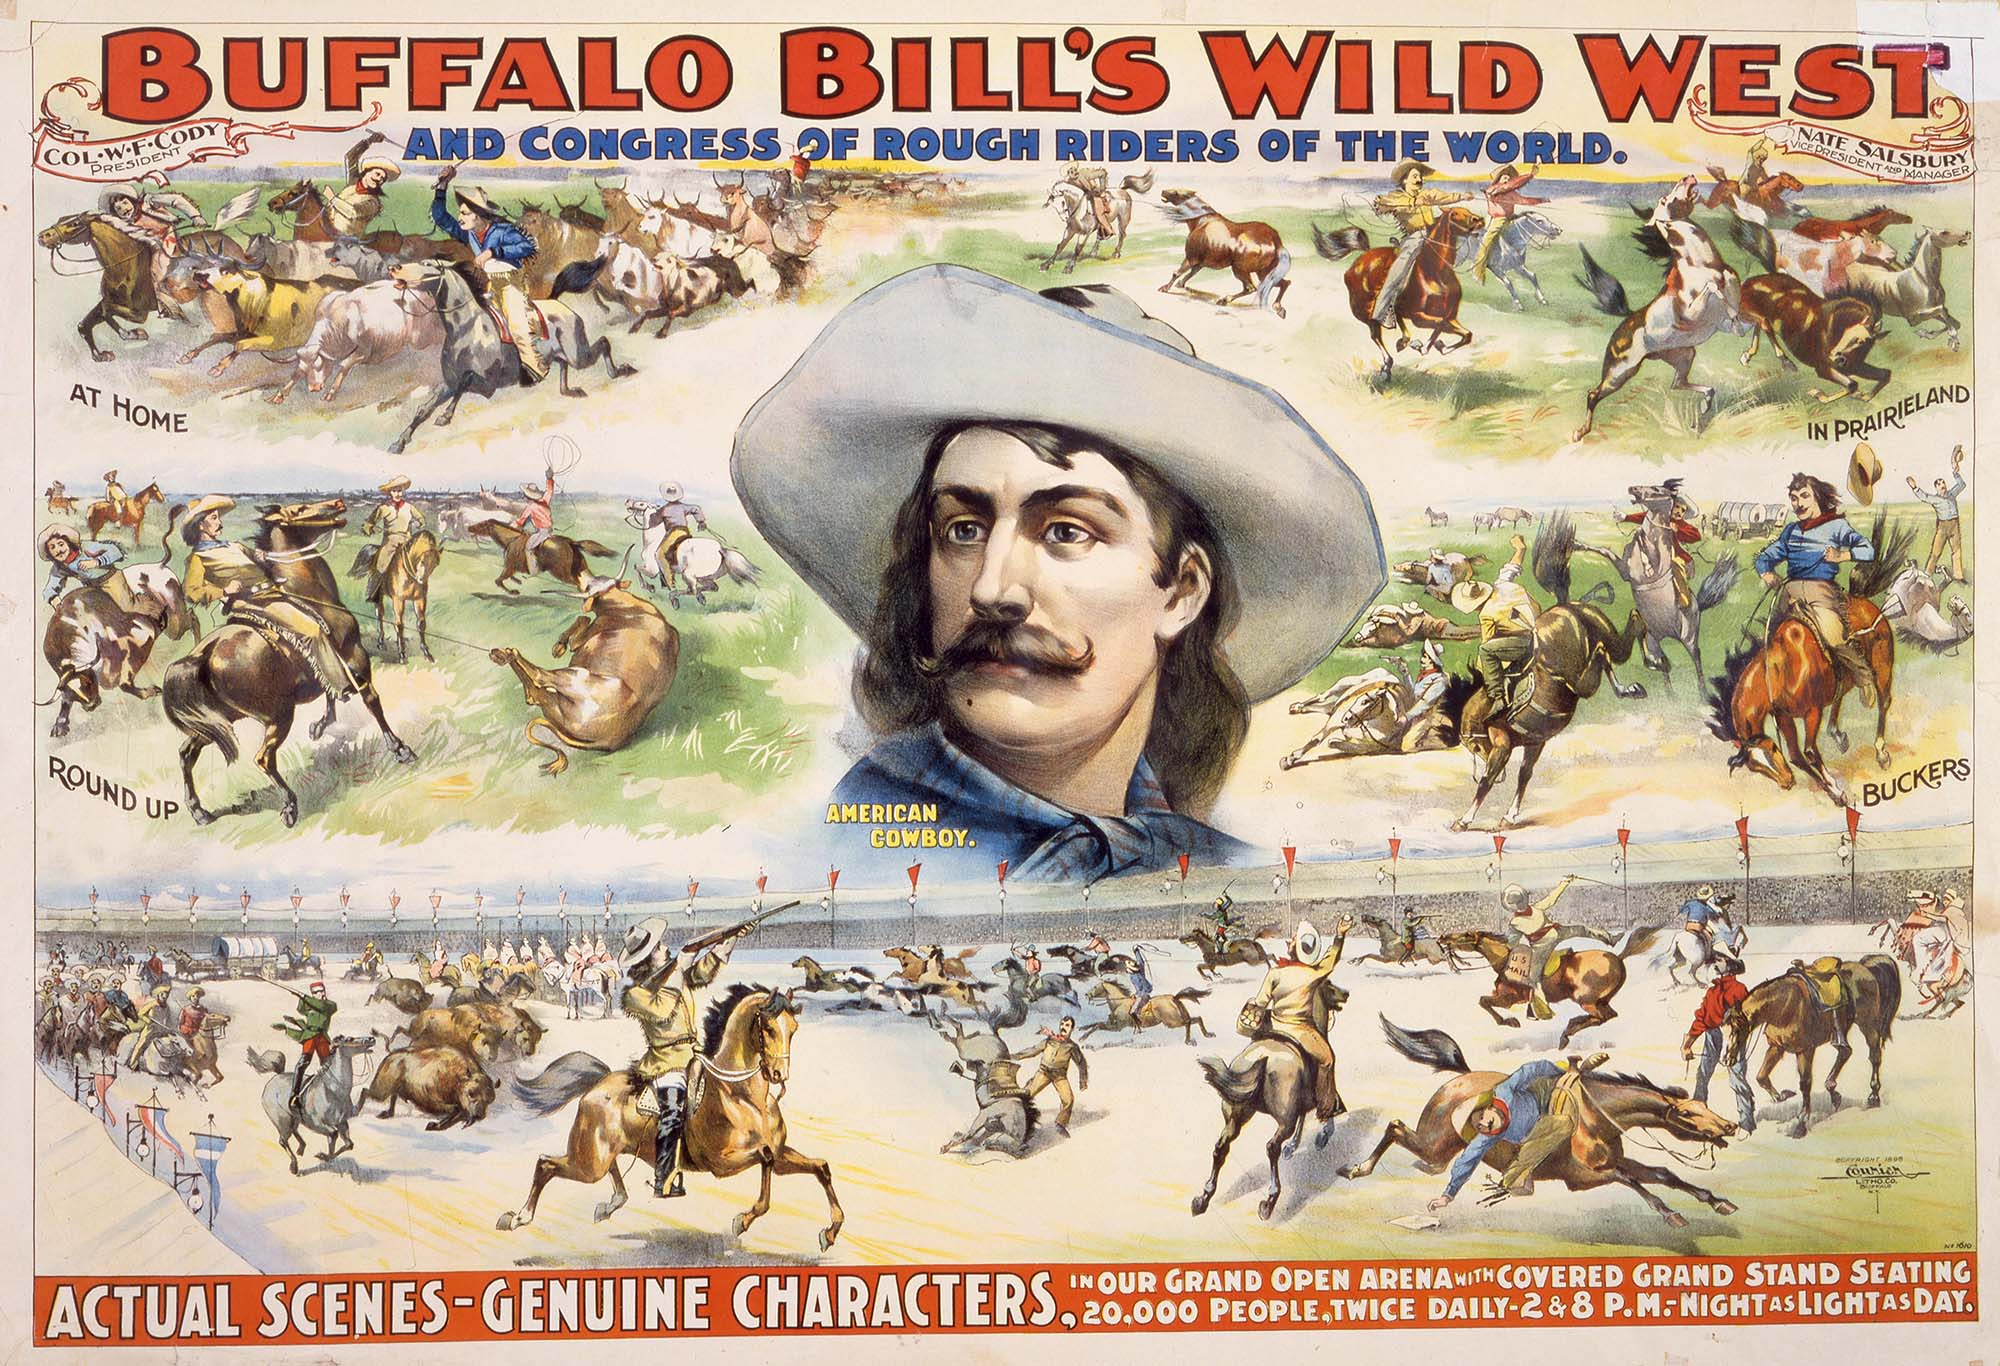 Buffalo Bill's Wild West poster highlighting cowboys, ca. 1896. Courier Litho. Co. 1.69.425